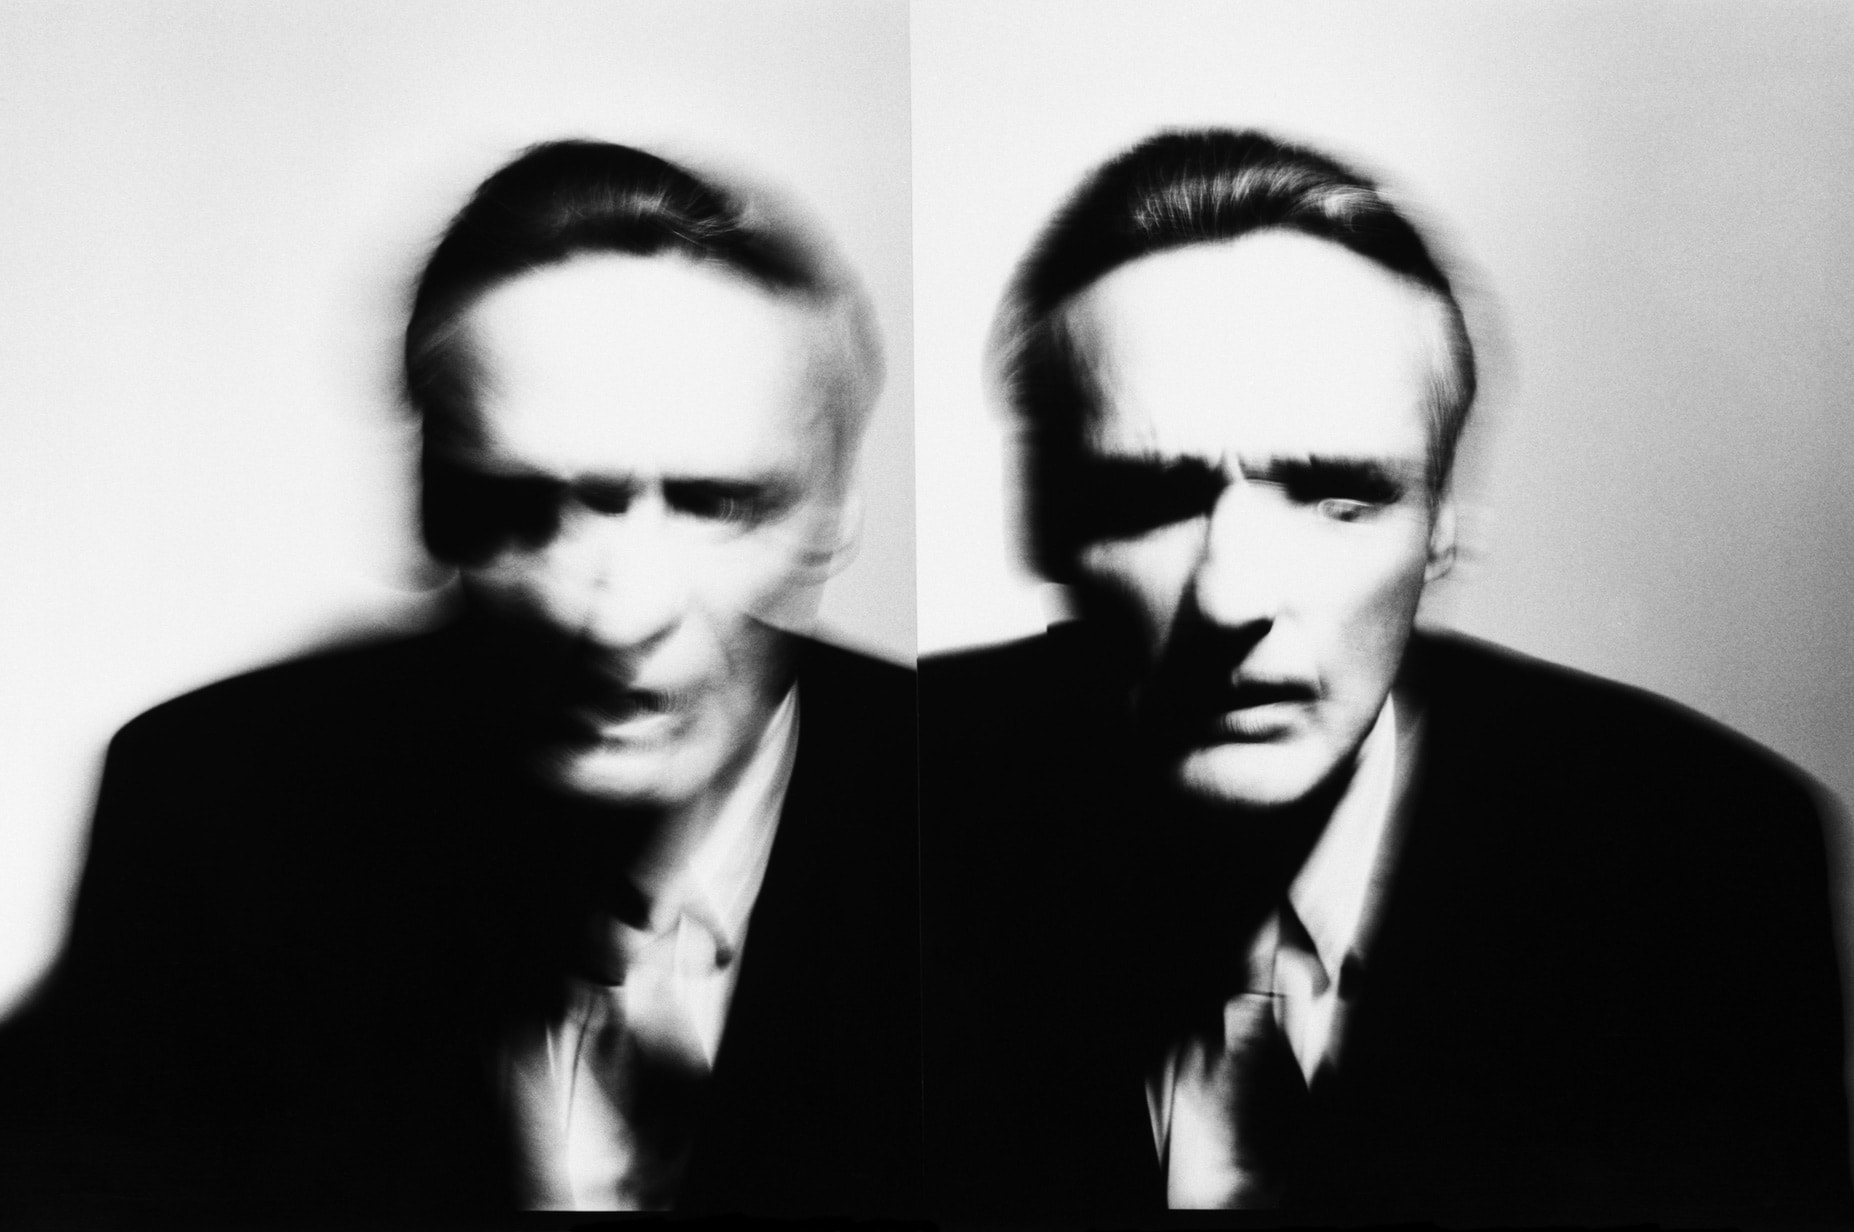 Dennis Hopper Backgrounds